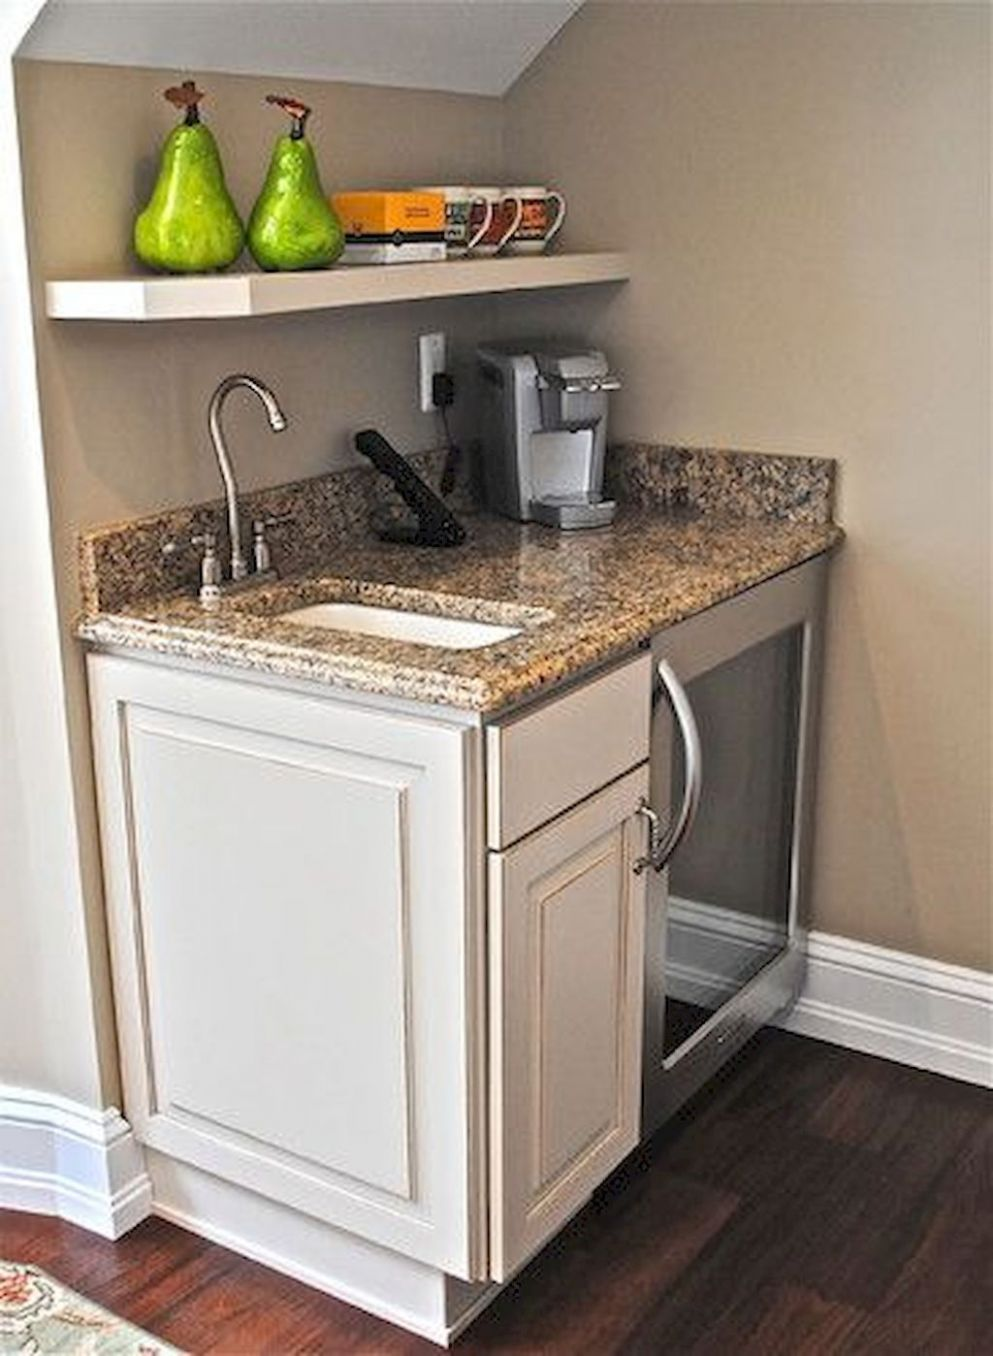 Small Kitchen Plan and Design for Small Room | Small kitchen plans ...